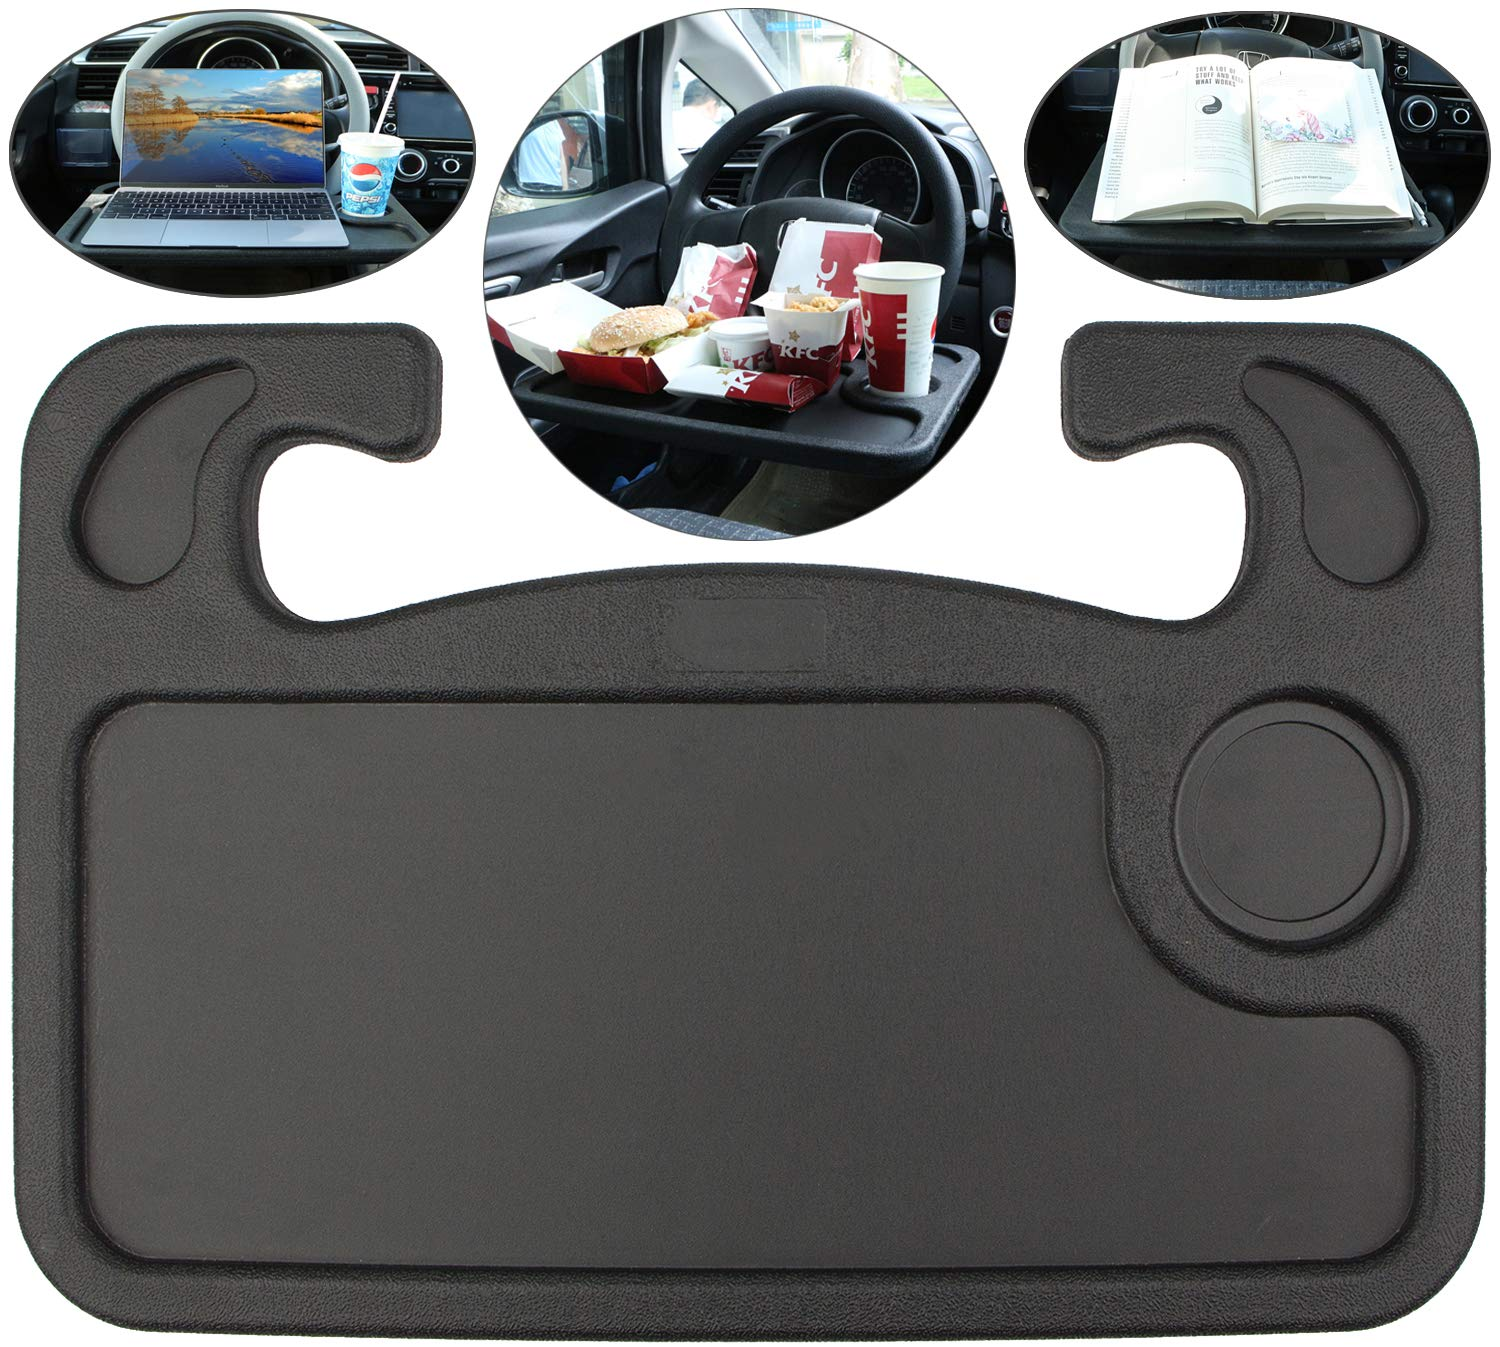 Spurtar Steering Wheel Tray (2in1) Auto Steering Wheel Desk for Computer, Food, Snack, Lunch, Drinking, Car Laptop Desk/Eating Table - Universal Fit, Black